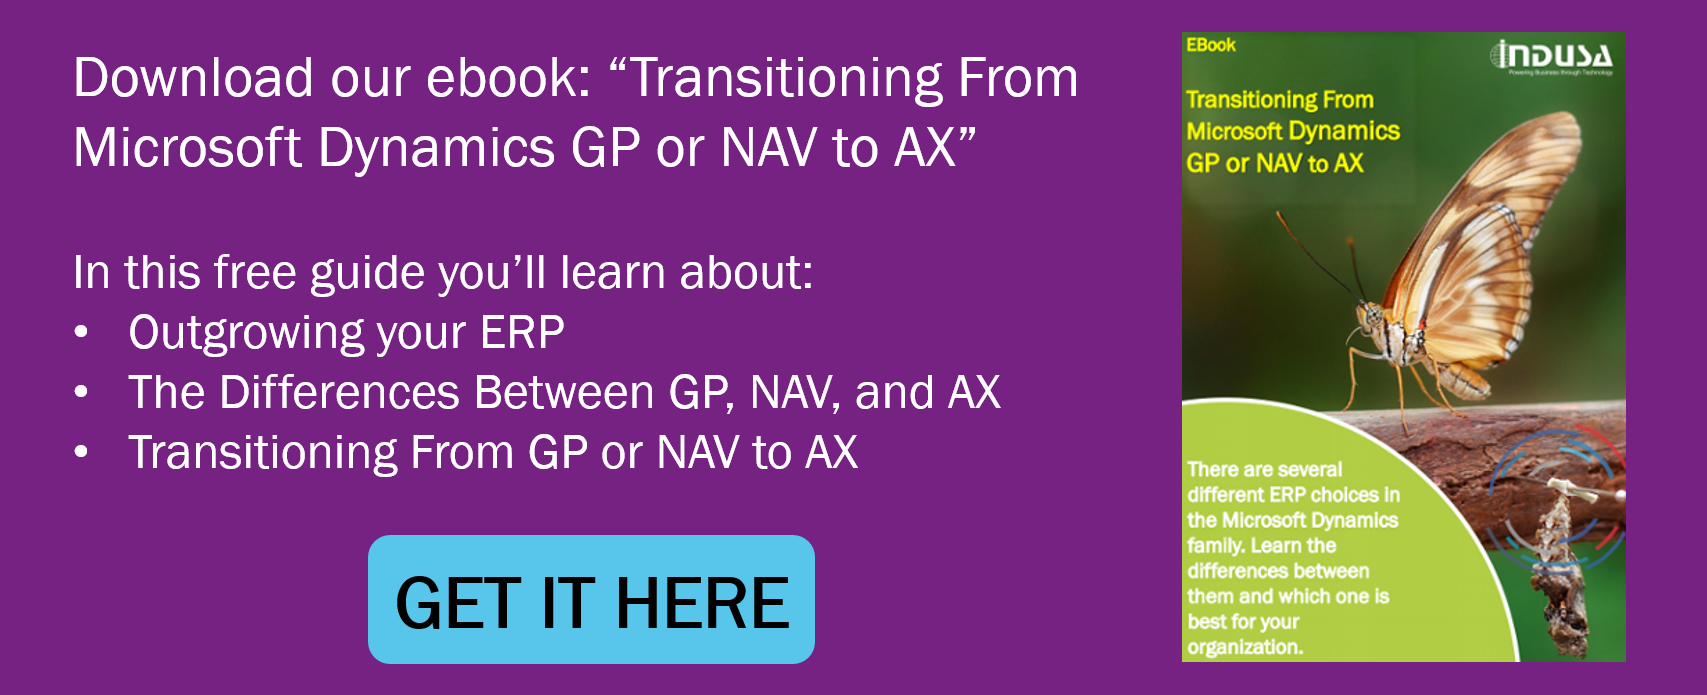 transitioning from GP or NAV to AX